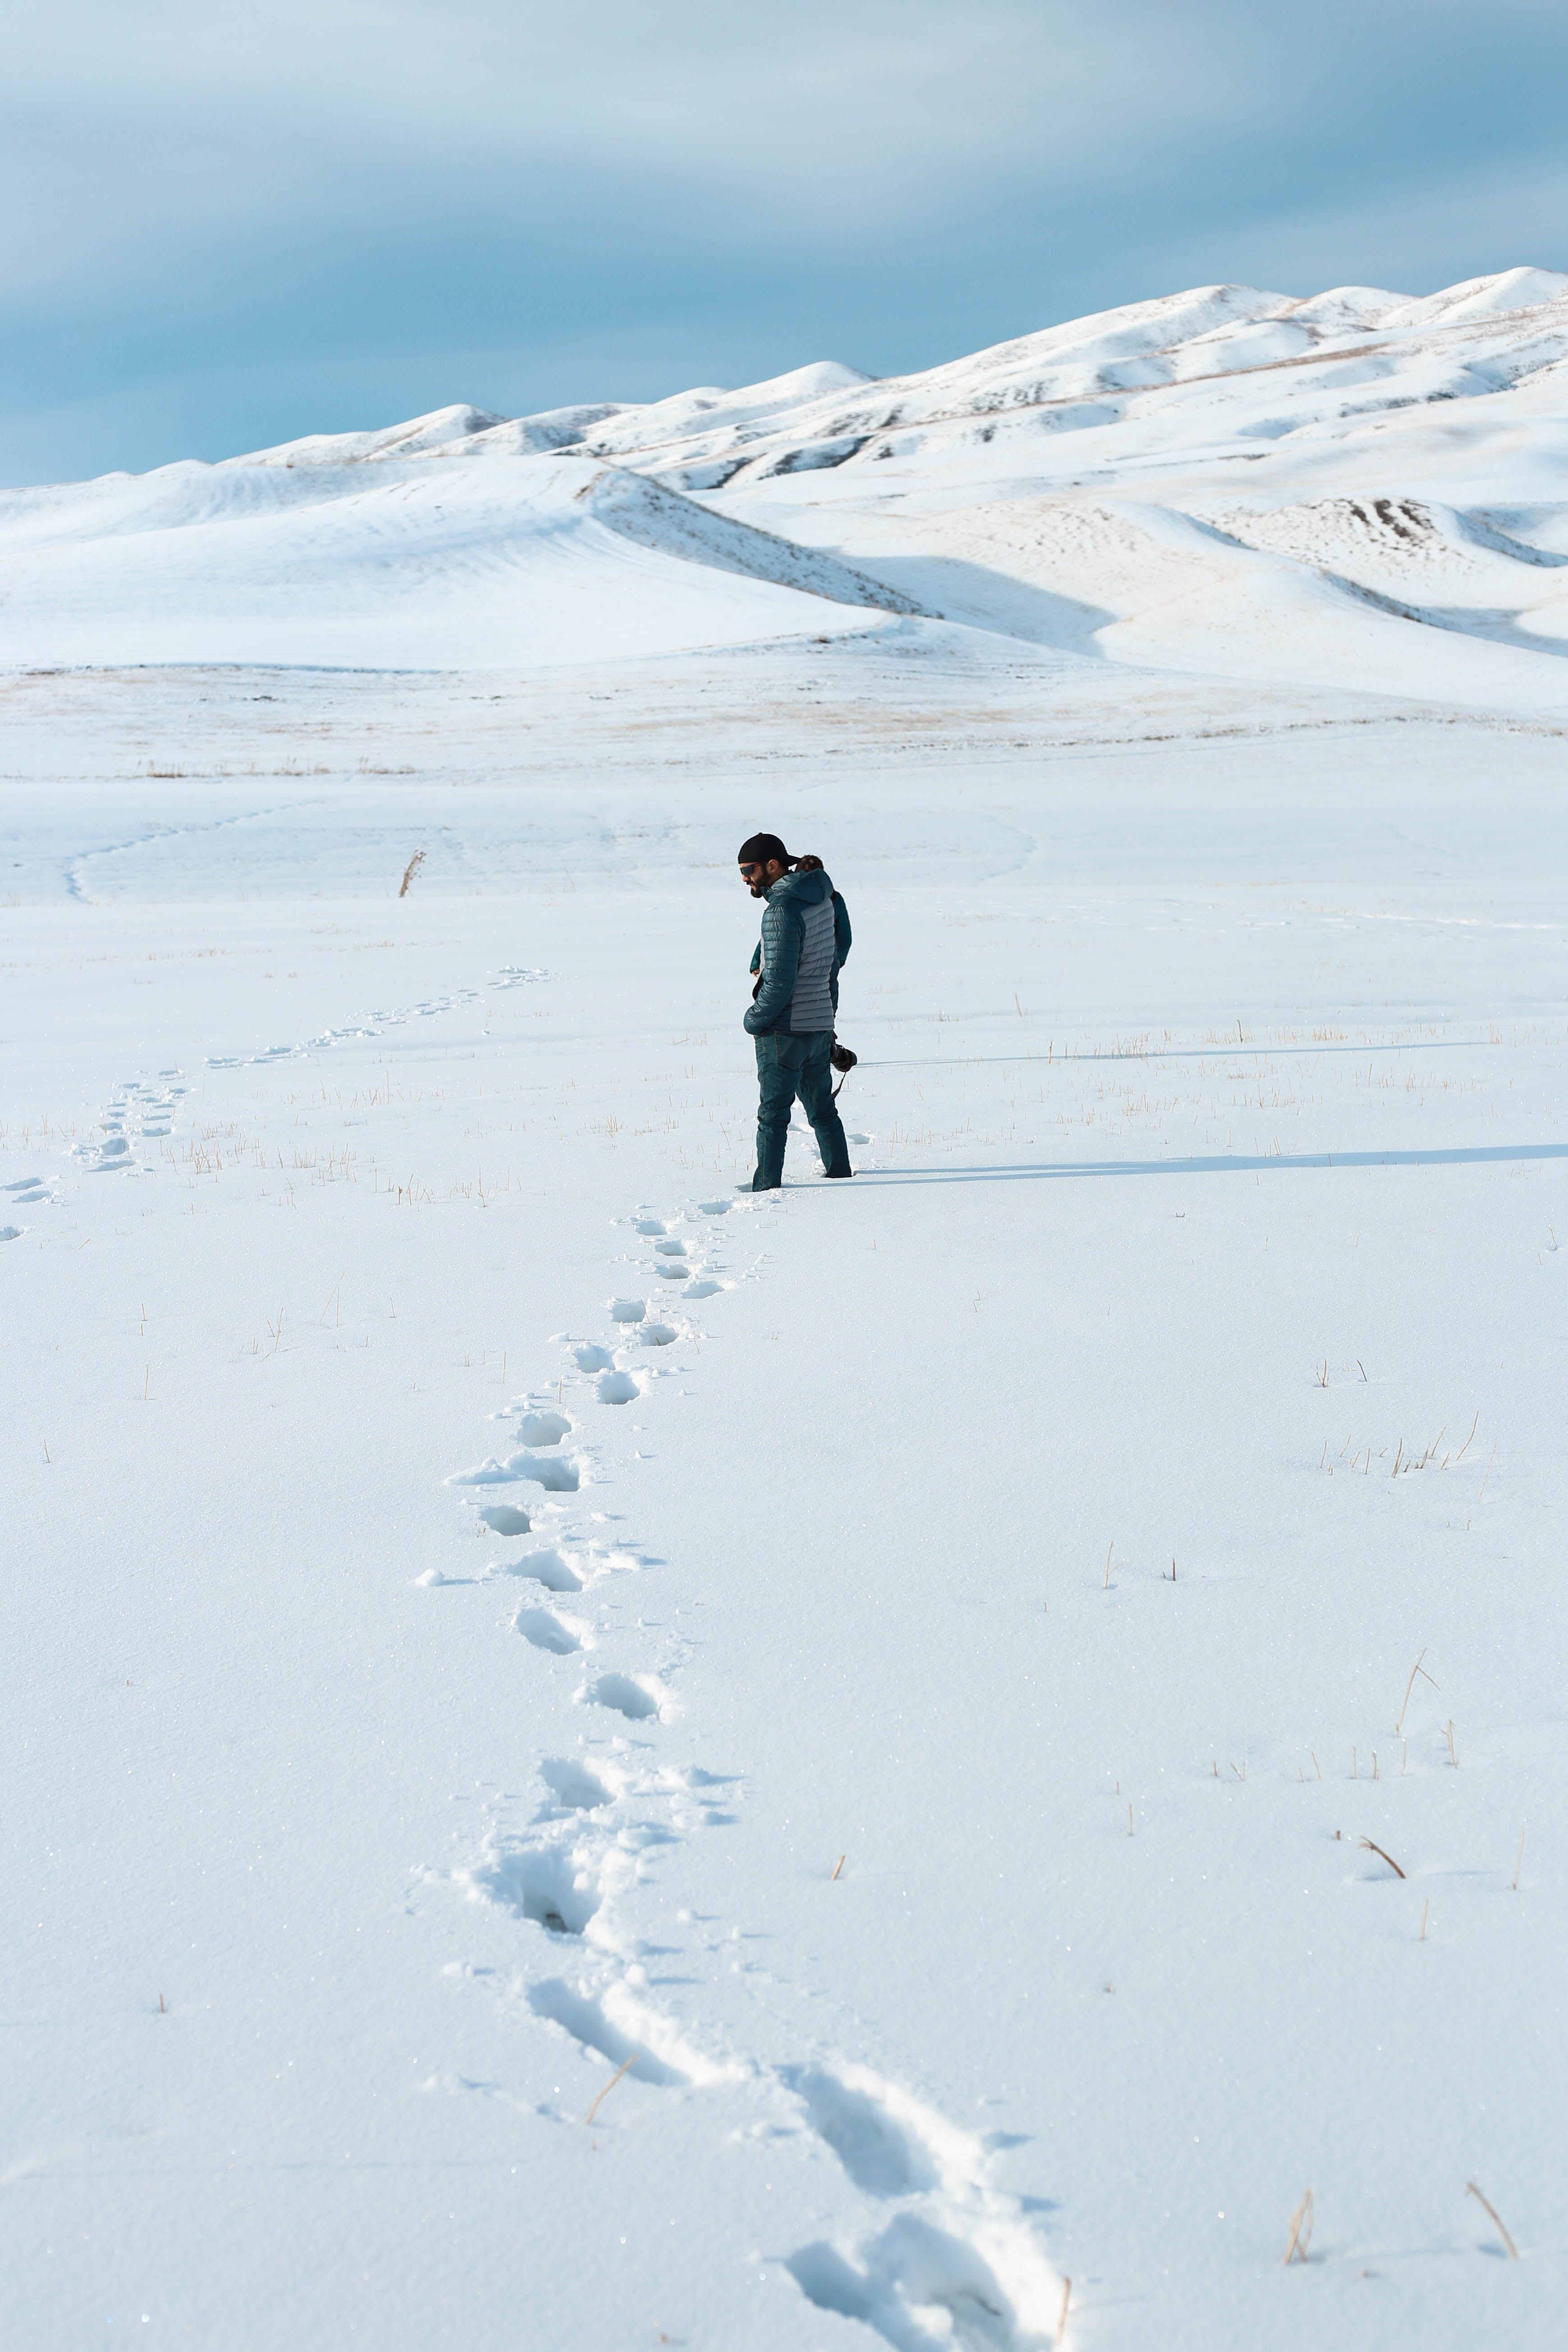 Man Standing on Snow Area